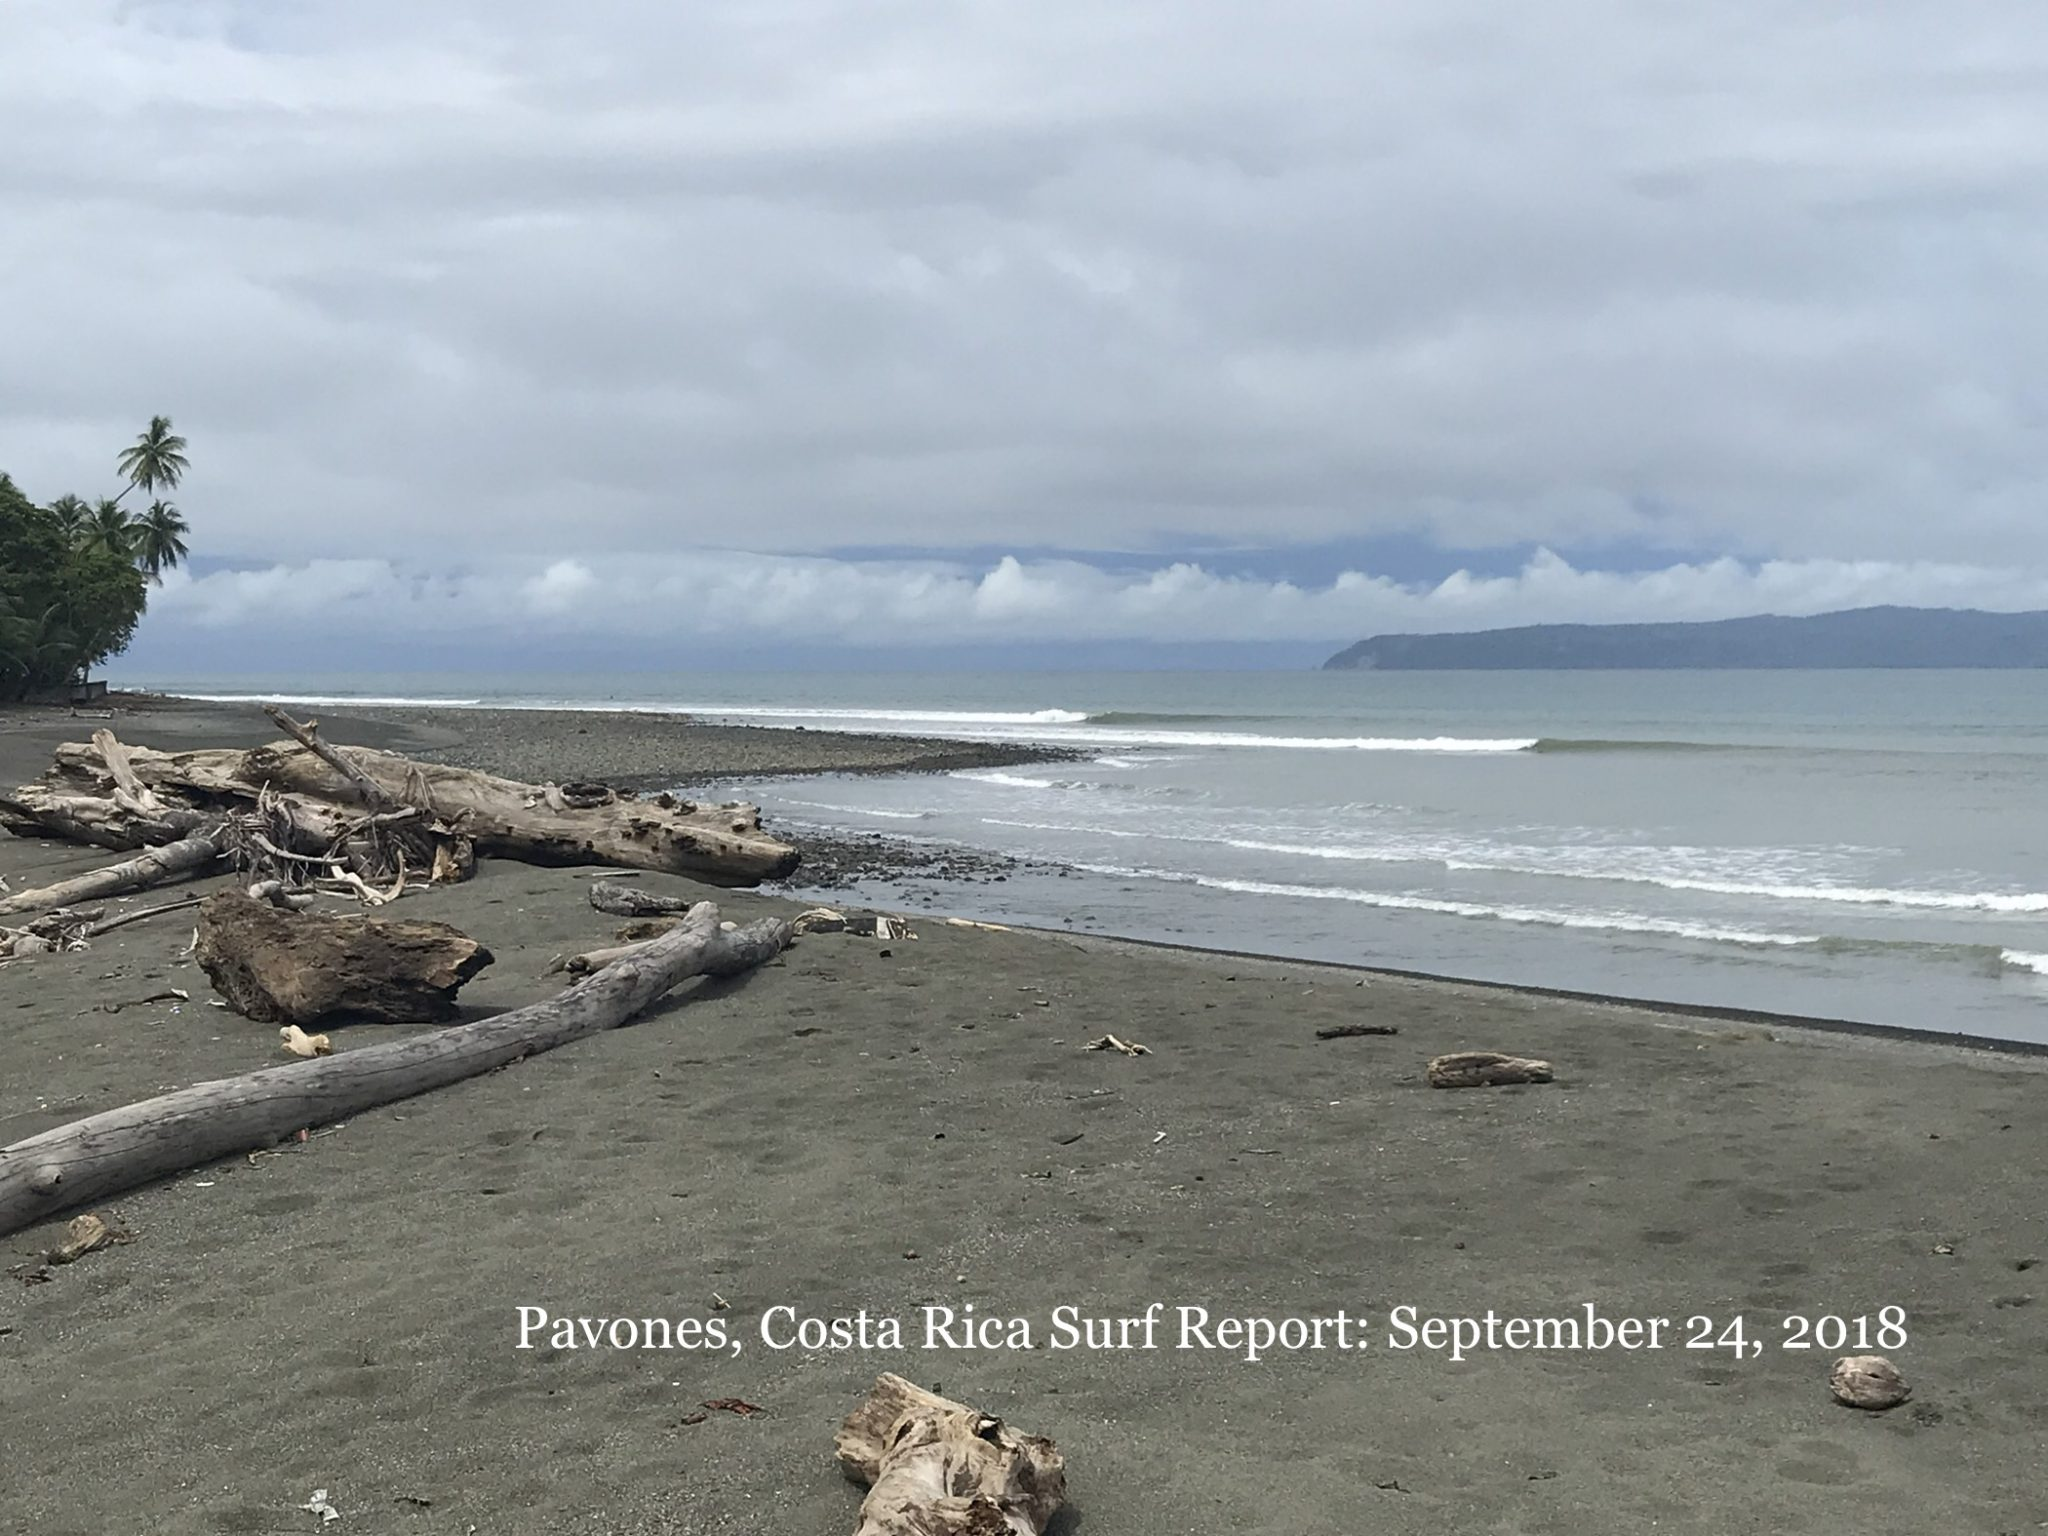 Pavones Surf Report Photos